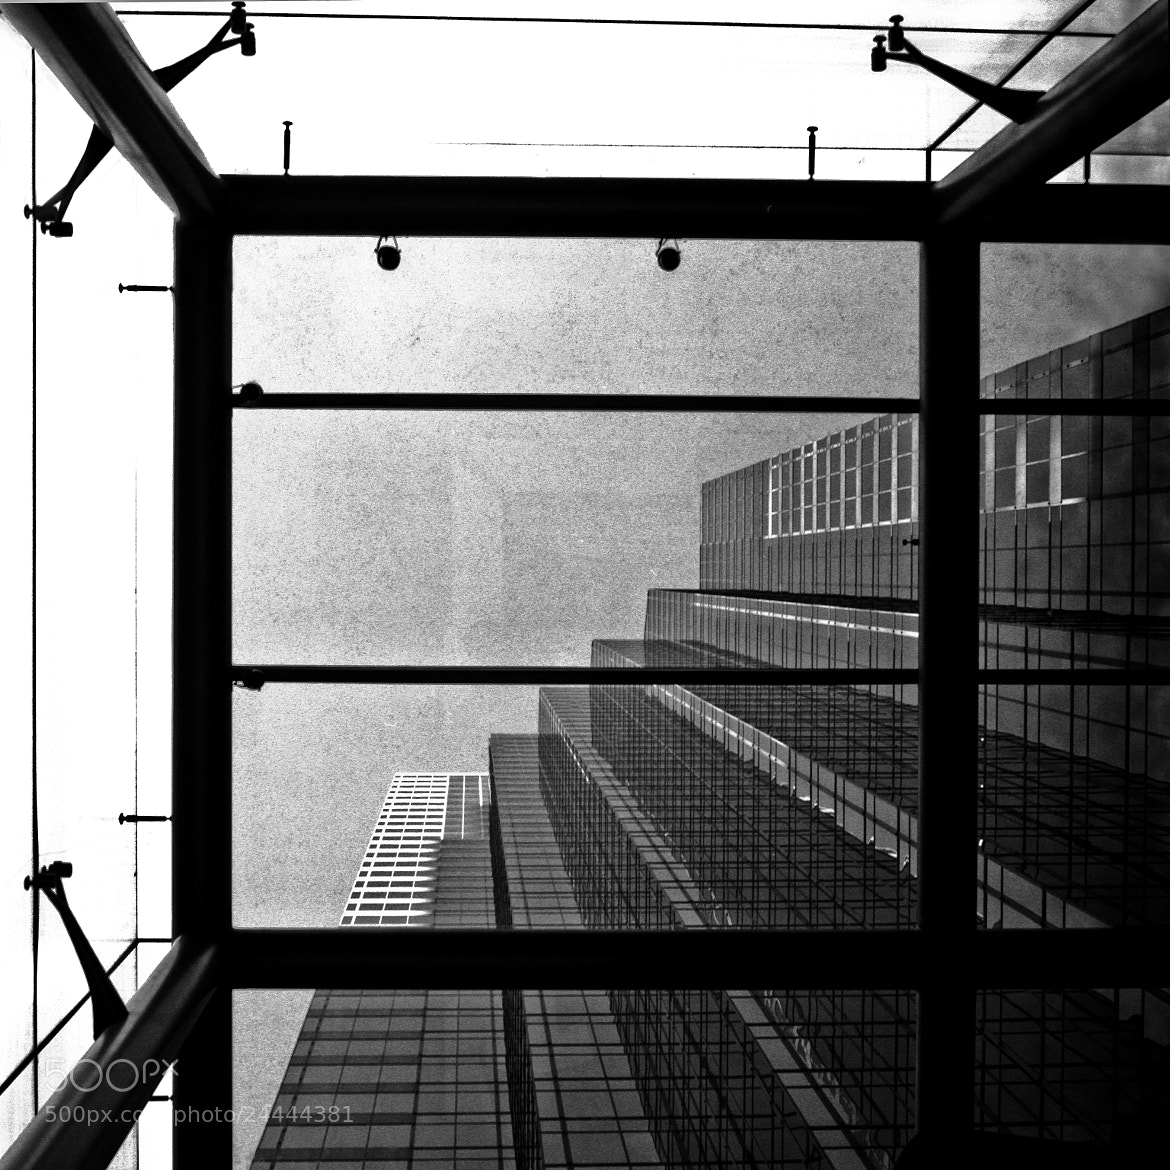 Photograph Through the glass by Gabriel Hernandez on 500px